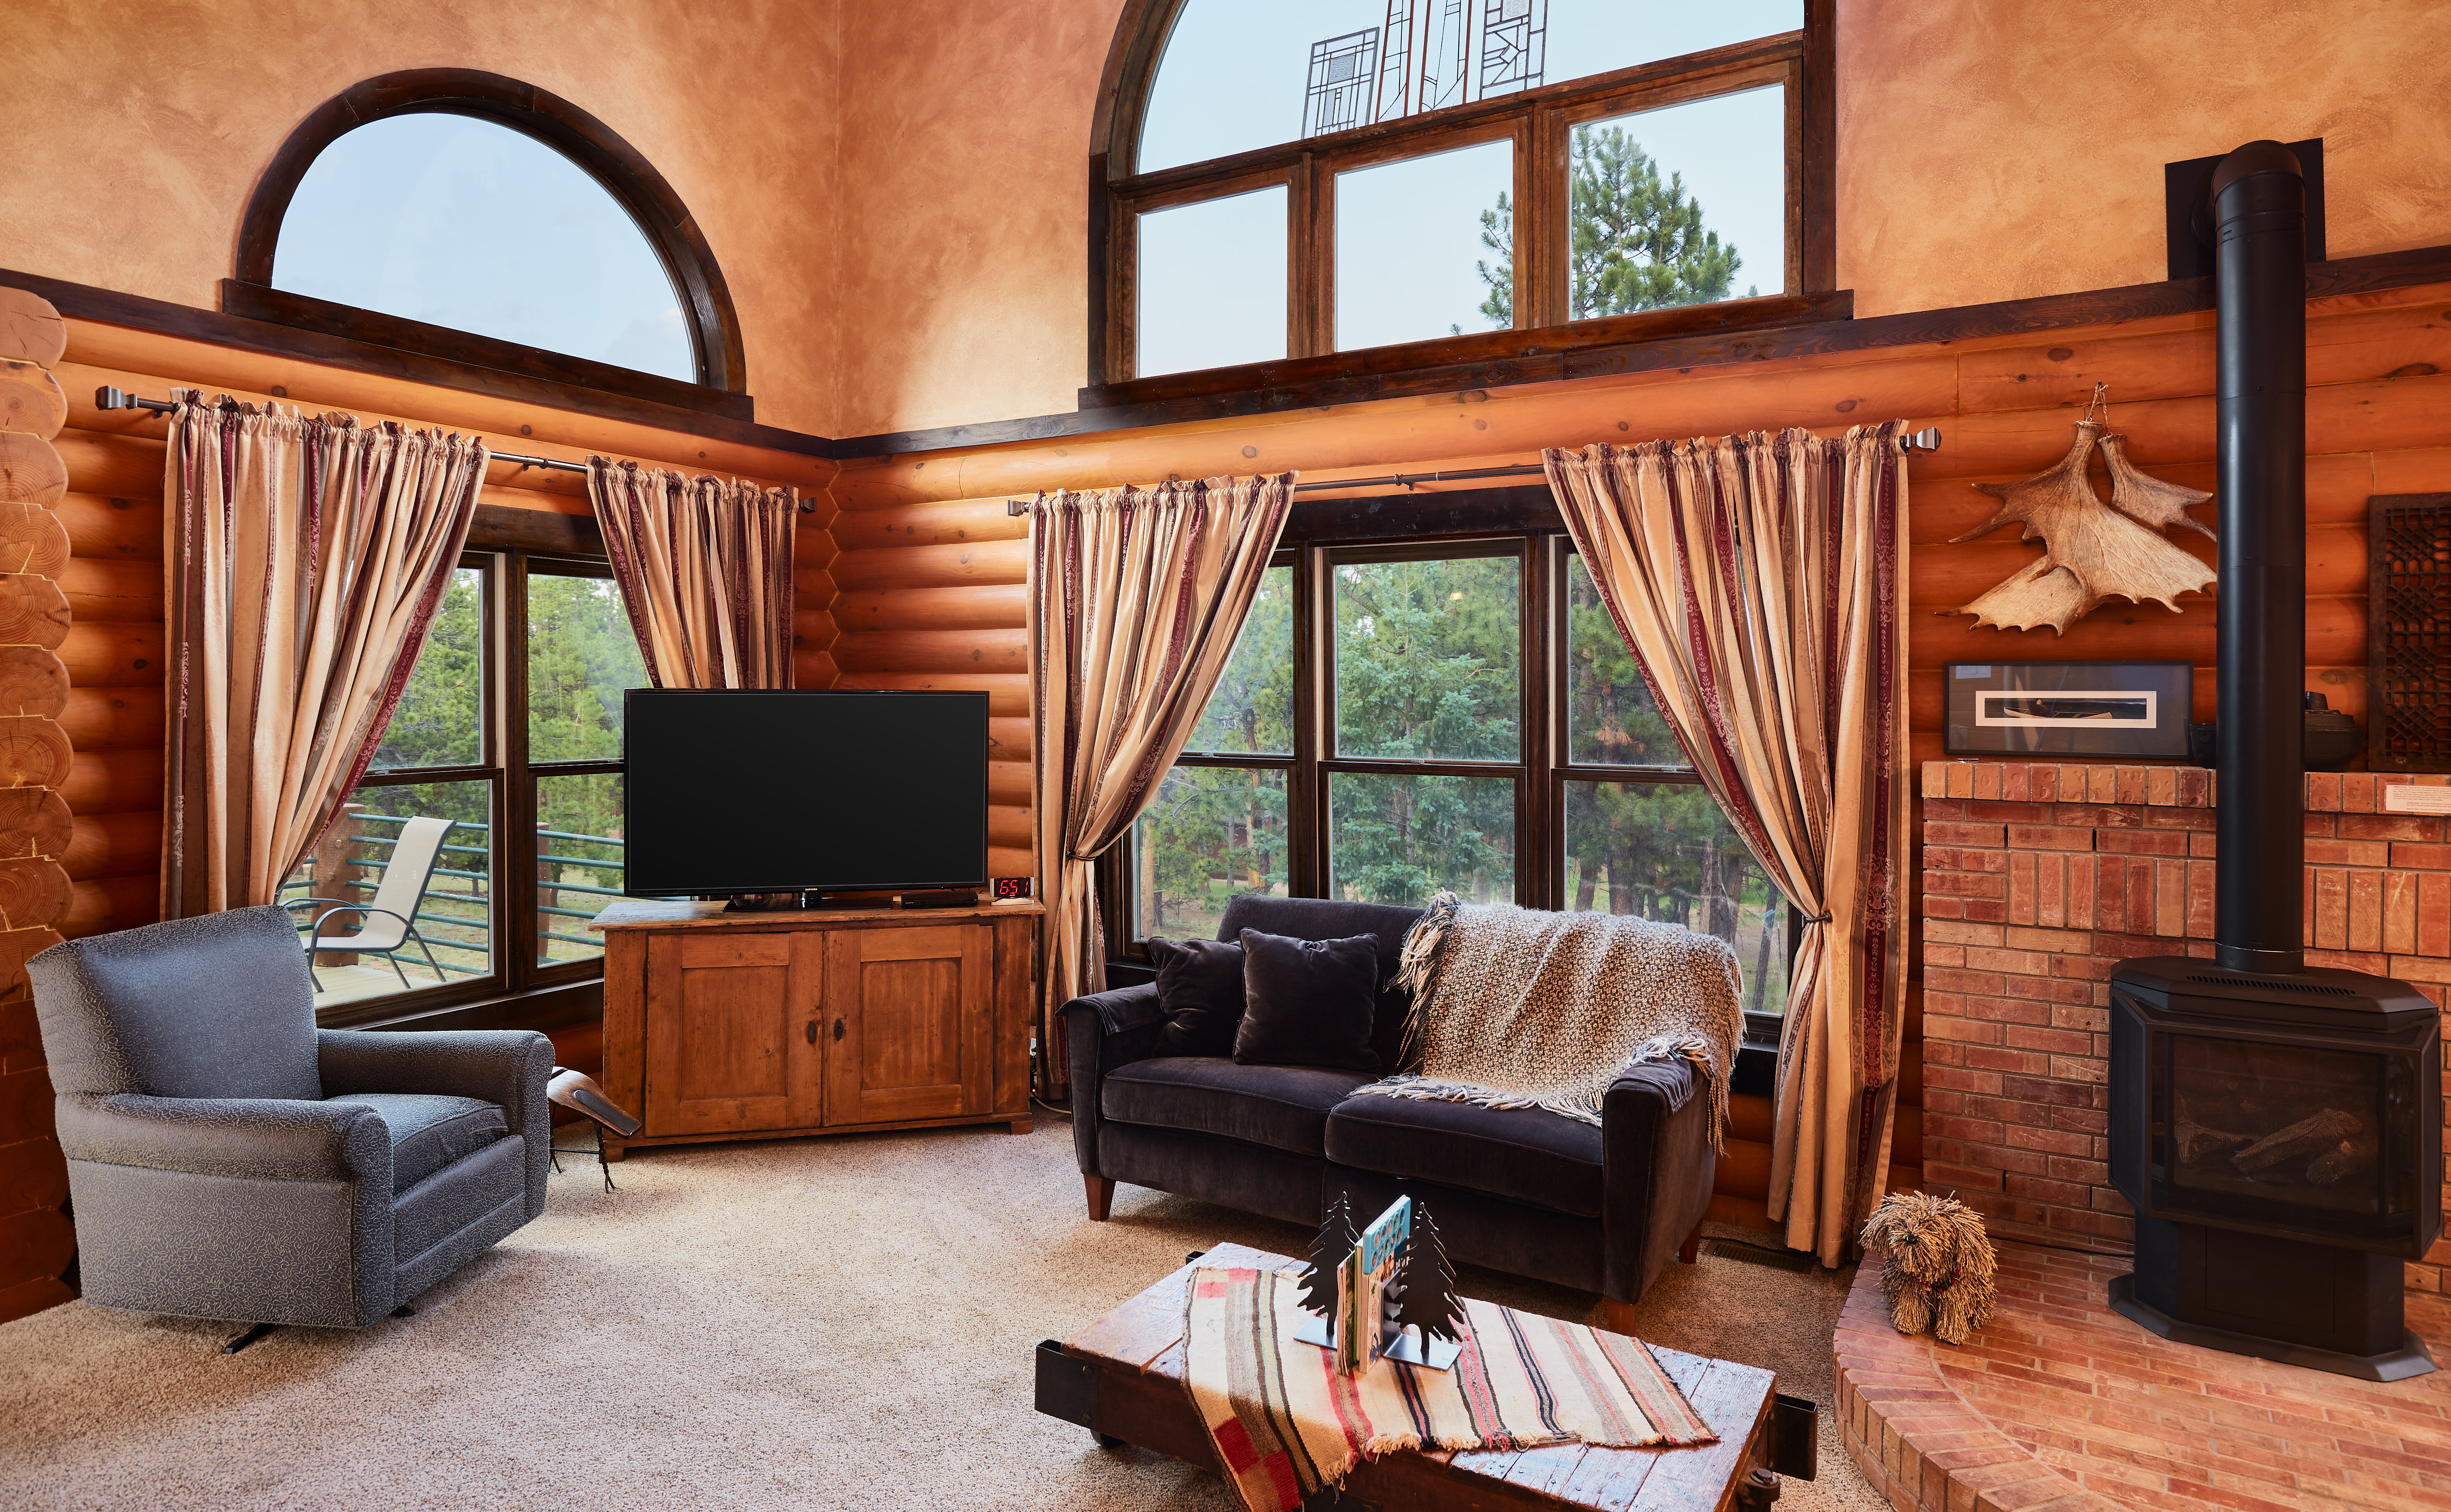 The living room is full of natural light from large windows.